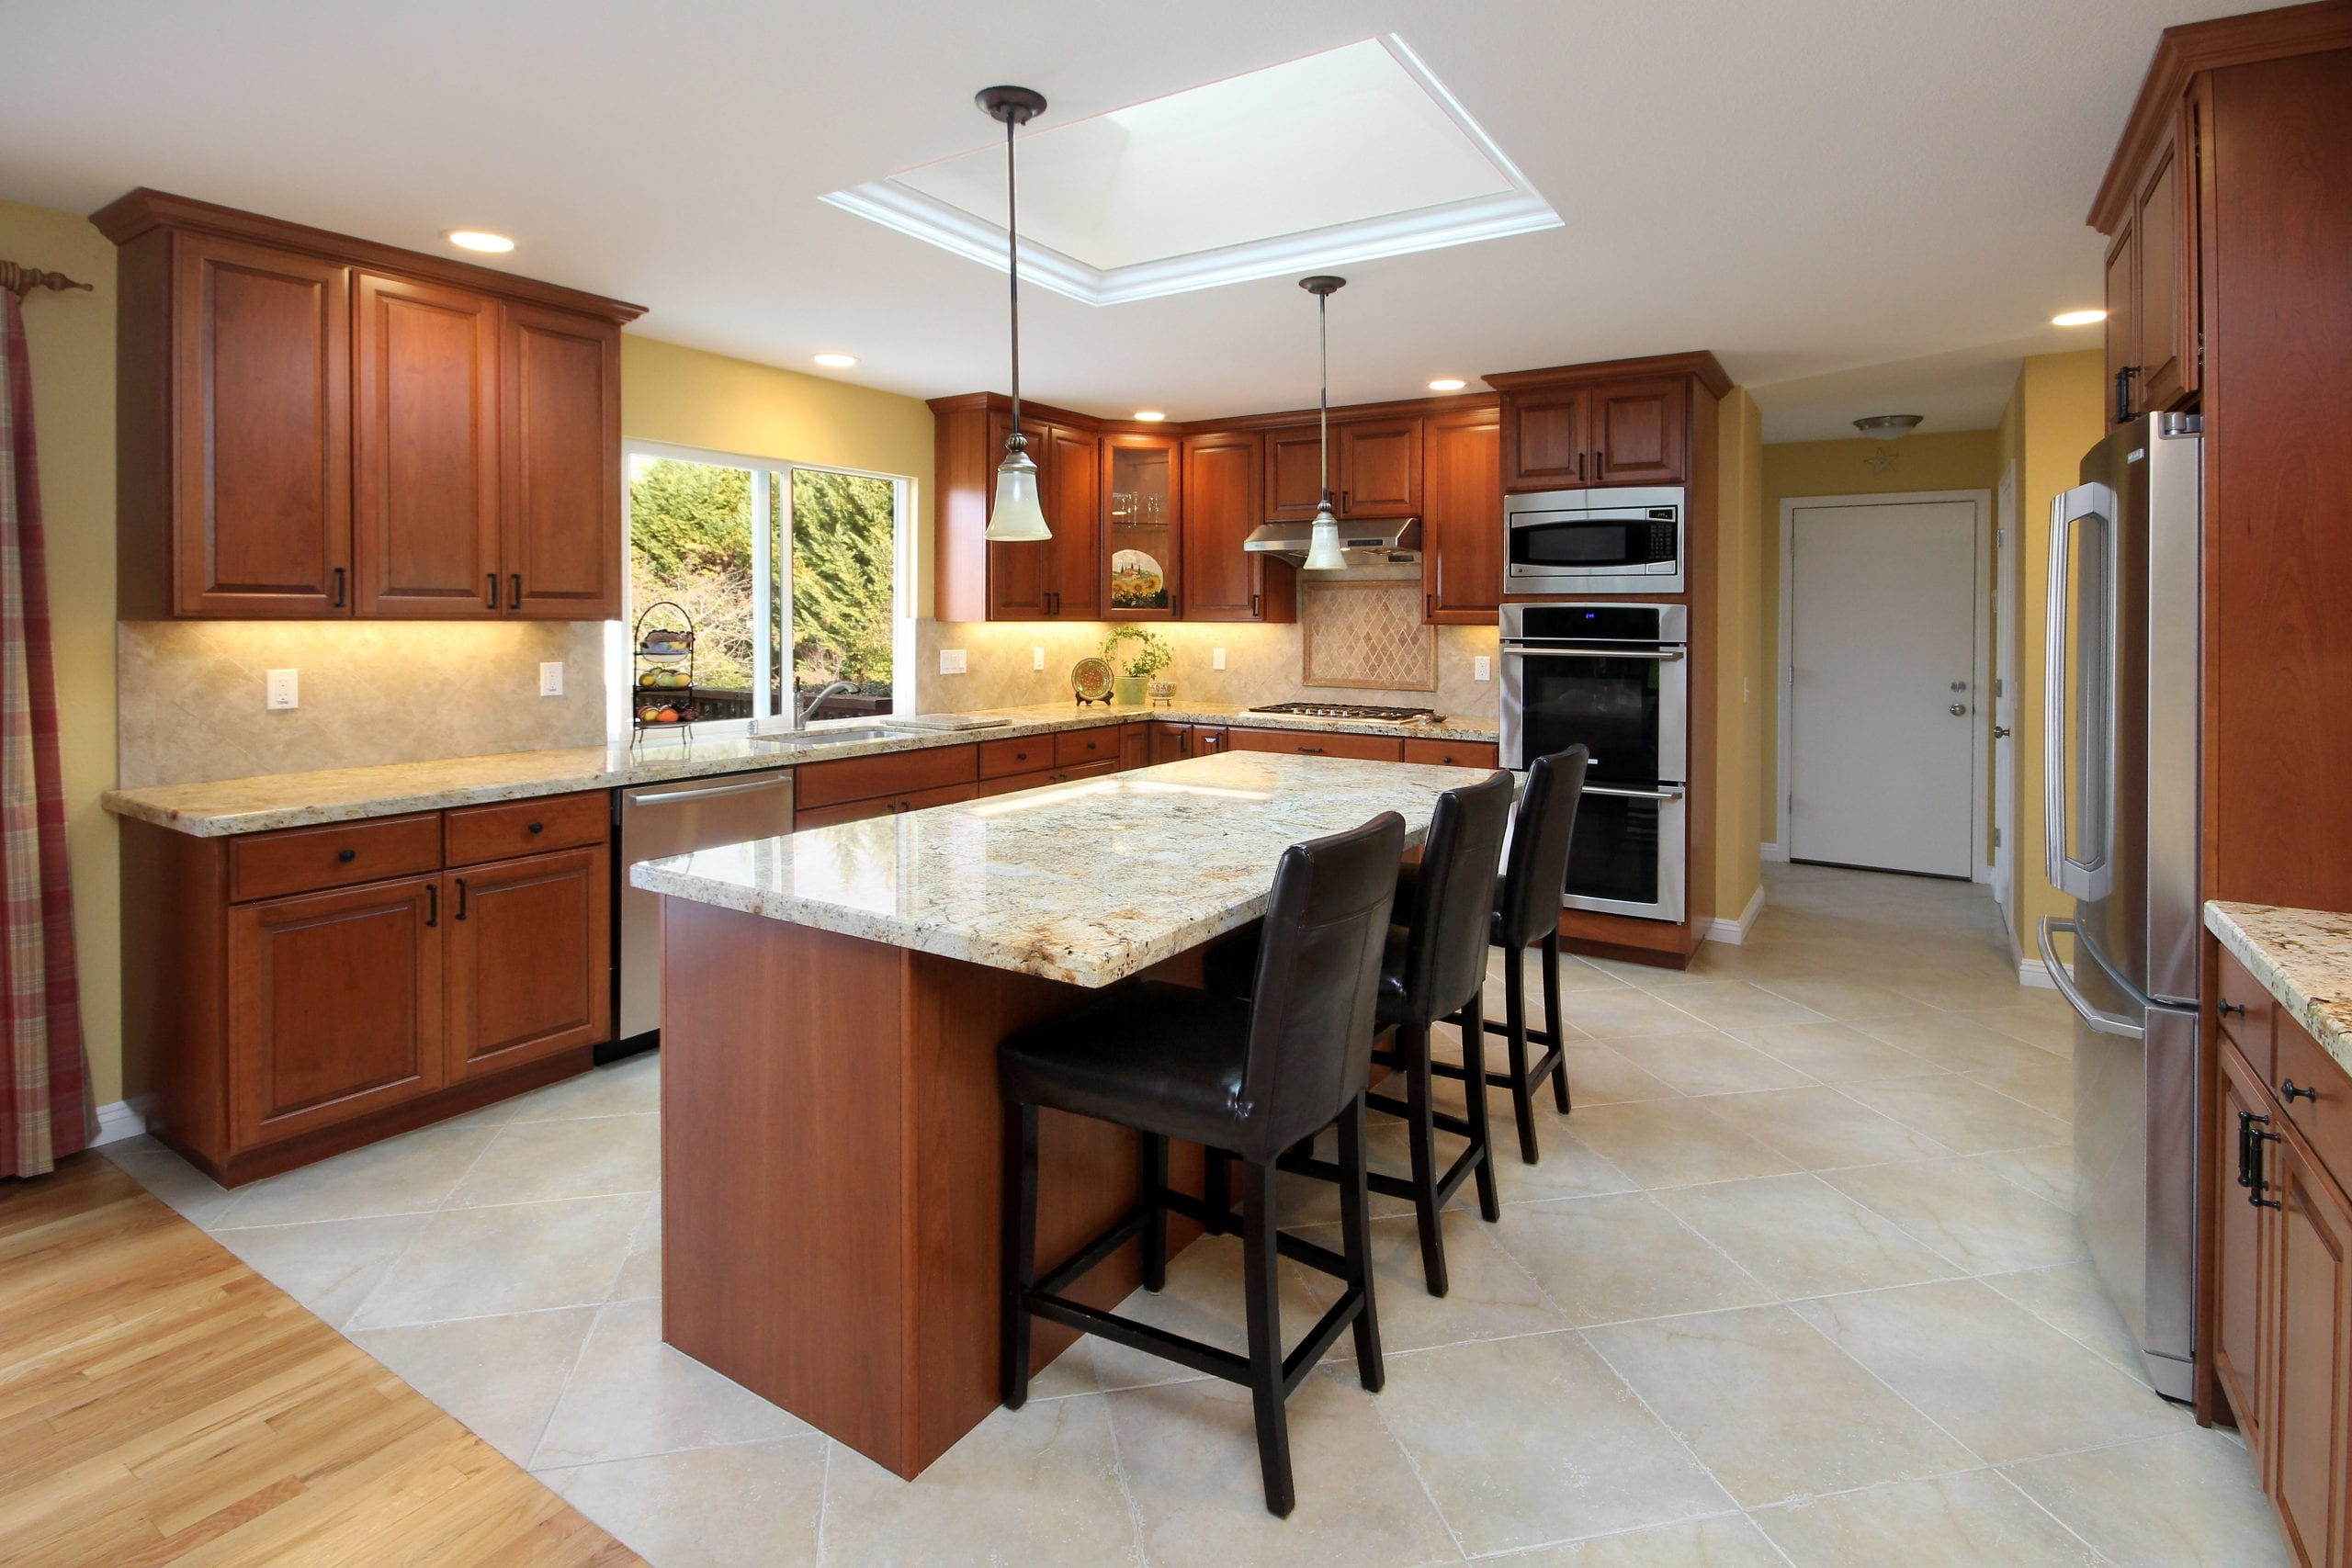 Kitchen remodel after photo showcasing finished cabinets, a stand-alone island, and a skylight